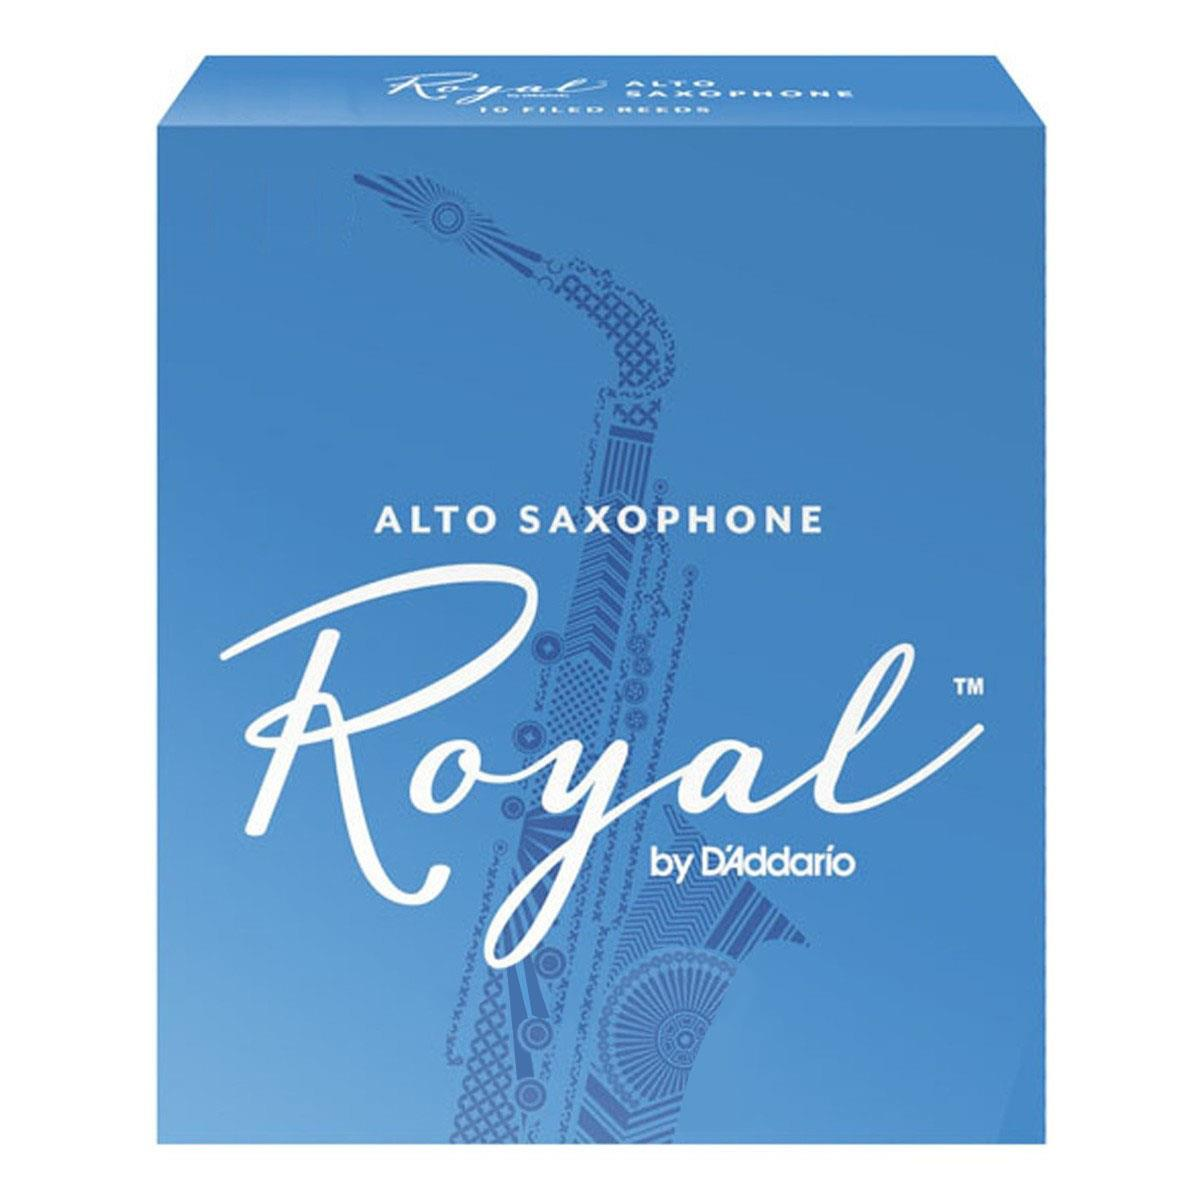 Image of D'Addario Woodwind Royal RJB1025 Alto Sax Reeds Strength 2.5 10-pack 0046716532961